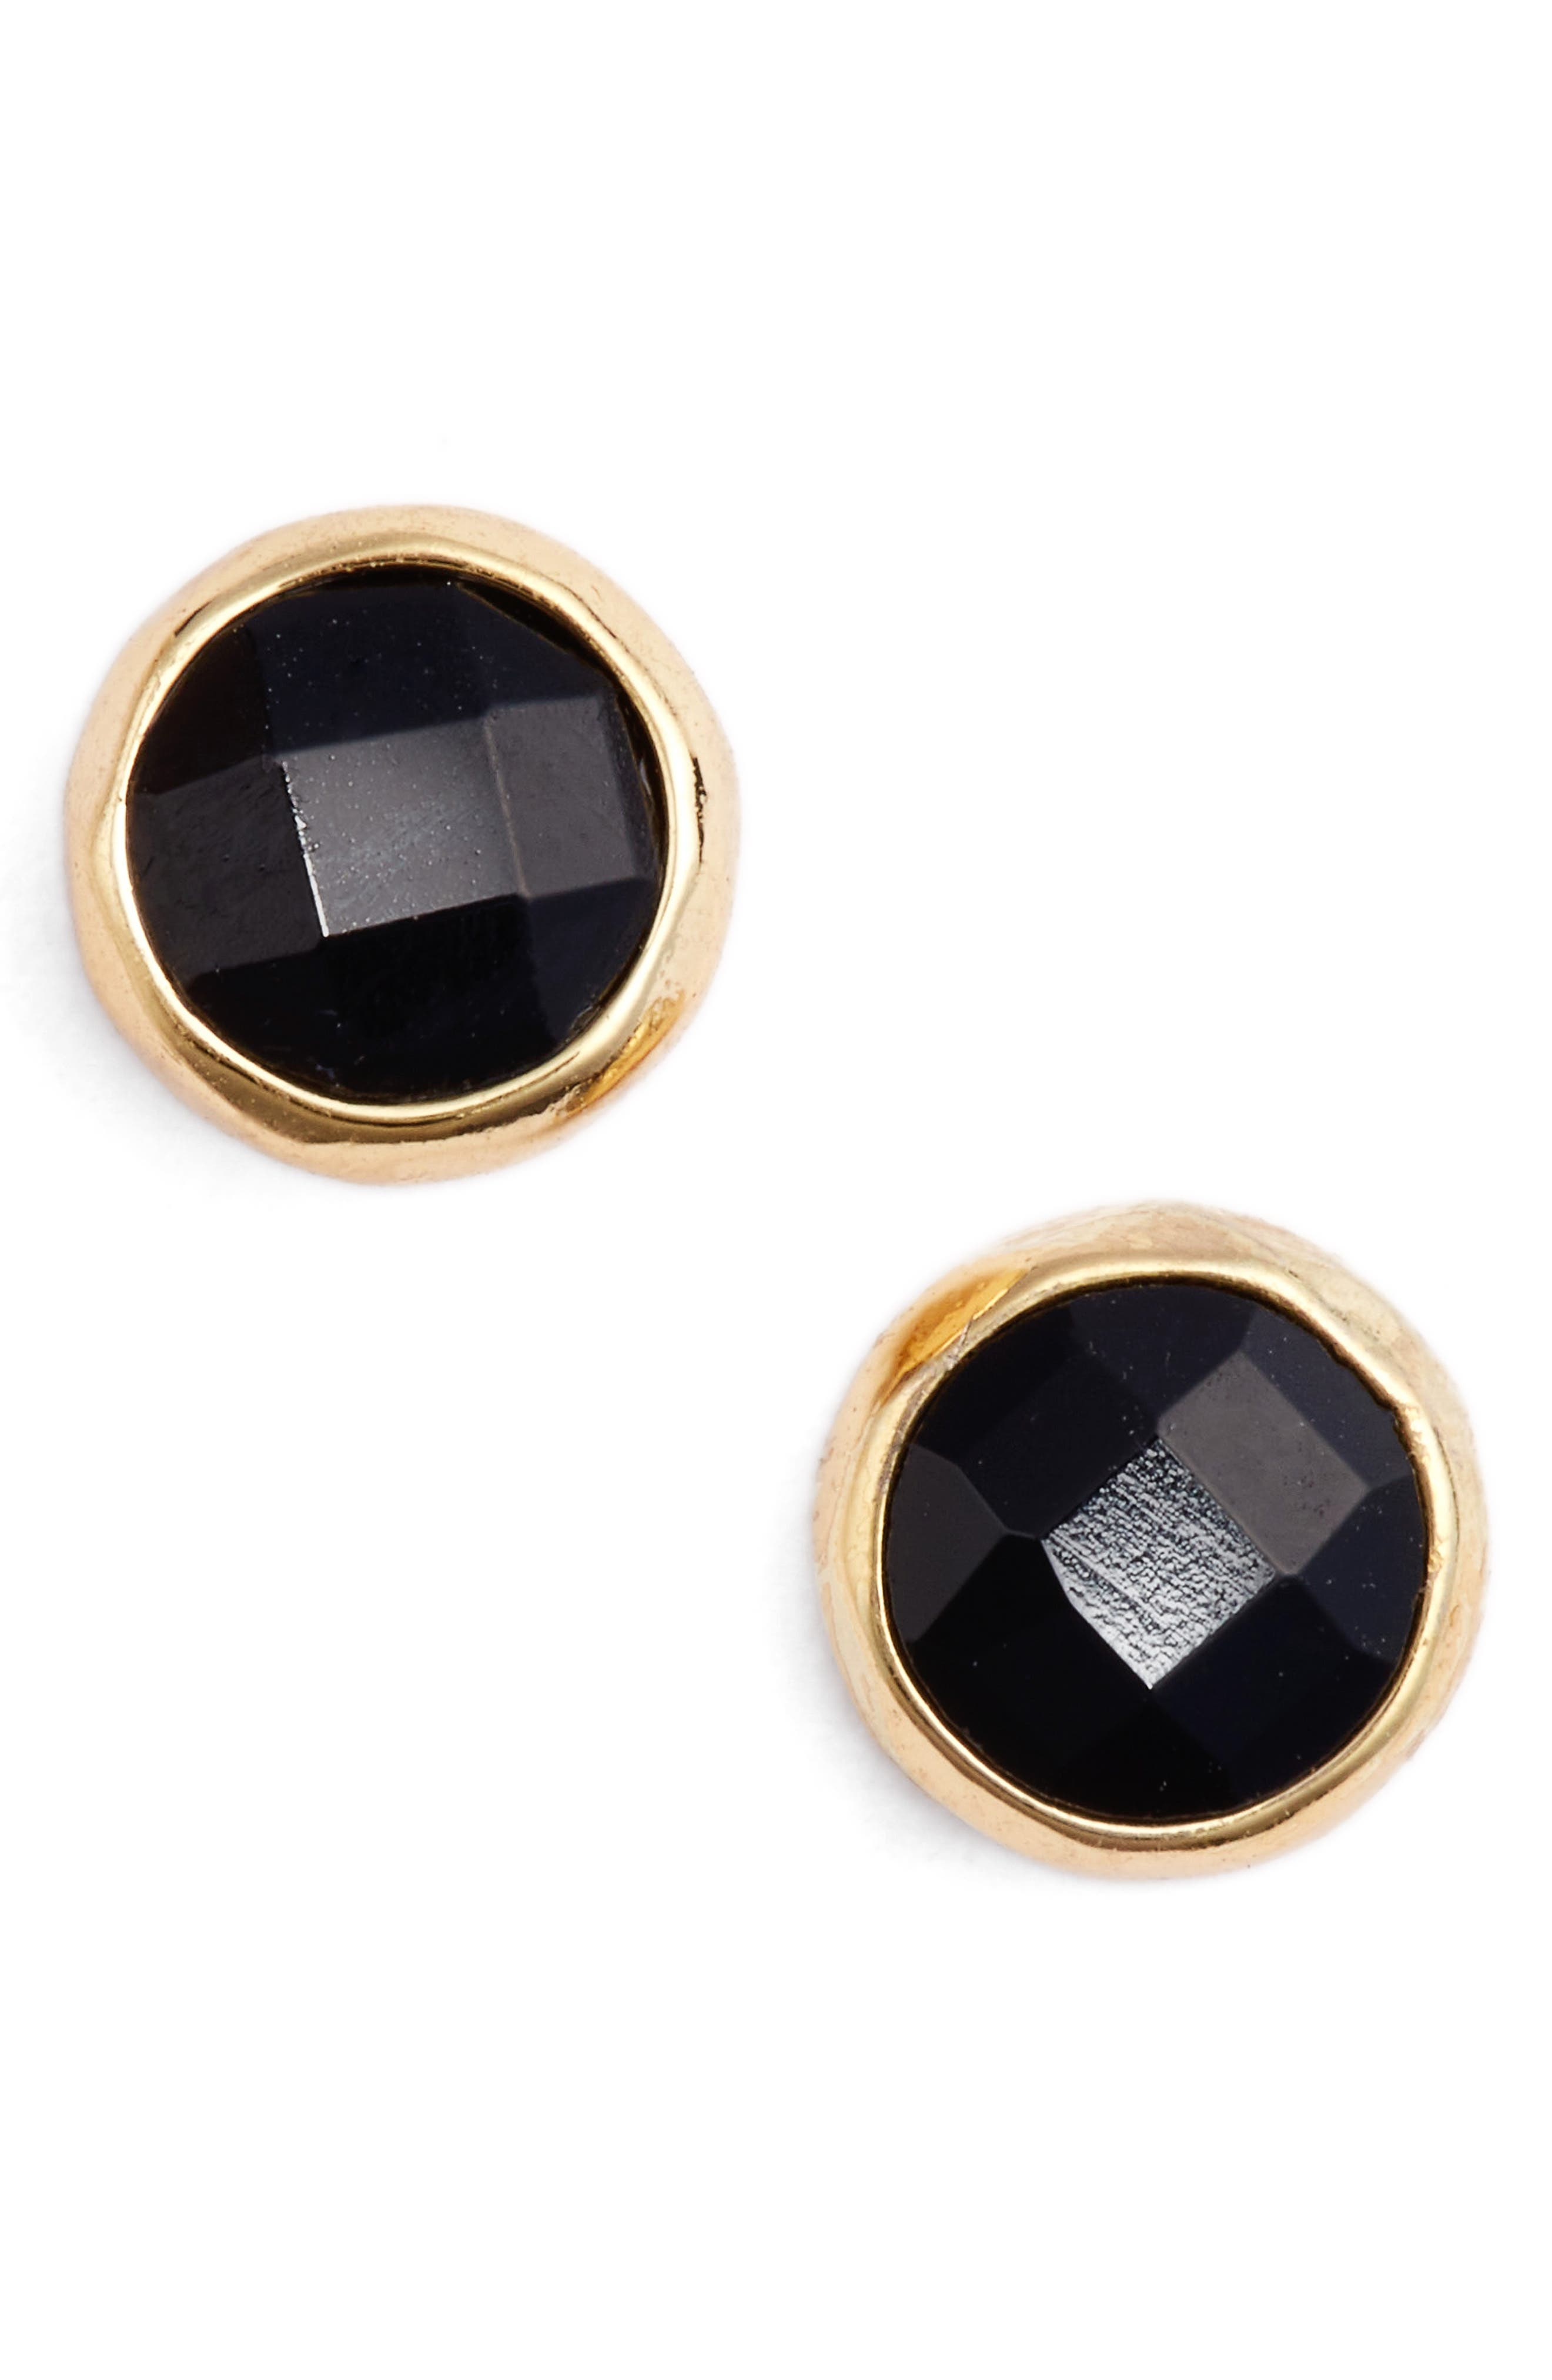 Protection Stud Earrings,                             Main thumbnail 1, color,                             Black Onyx/ Gold